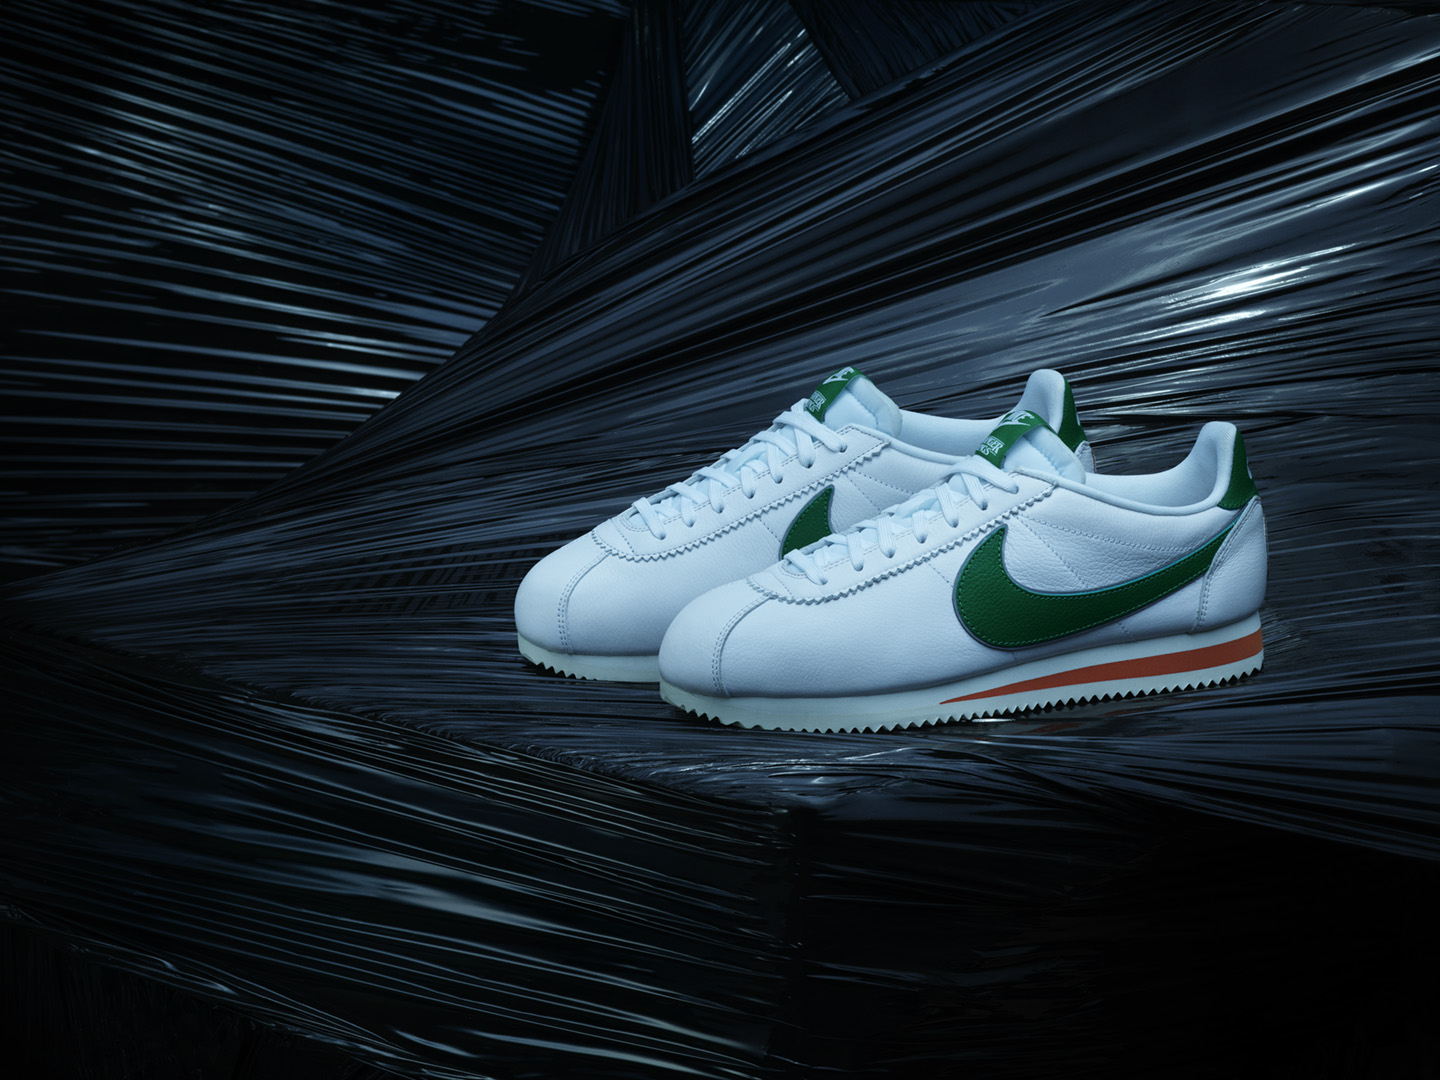 Nike x Stranger Things Cortez